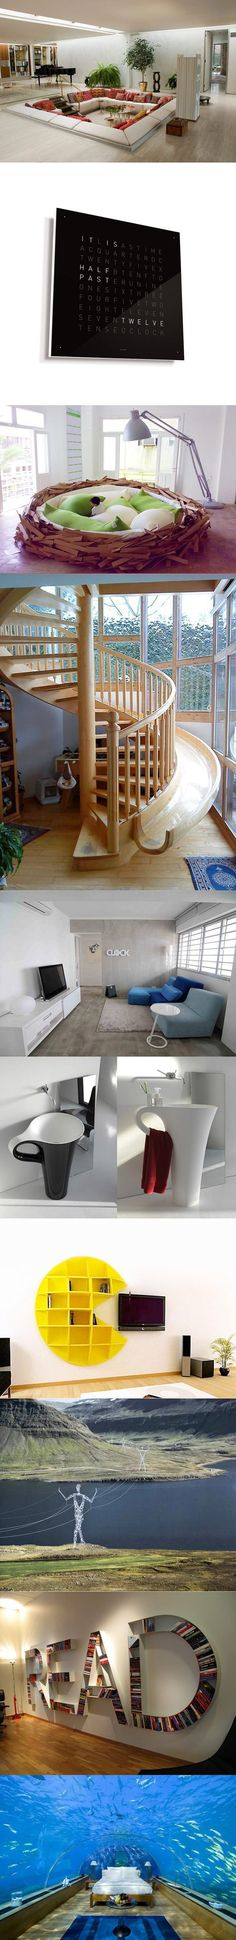 :) Stair Slide, Slide Staircase, Bed Slide, Spiral Staircases, Nest Design, Stair Decor, Creative Storage, Creative Ideas, House Stairs